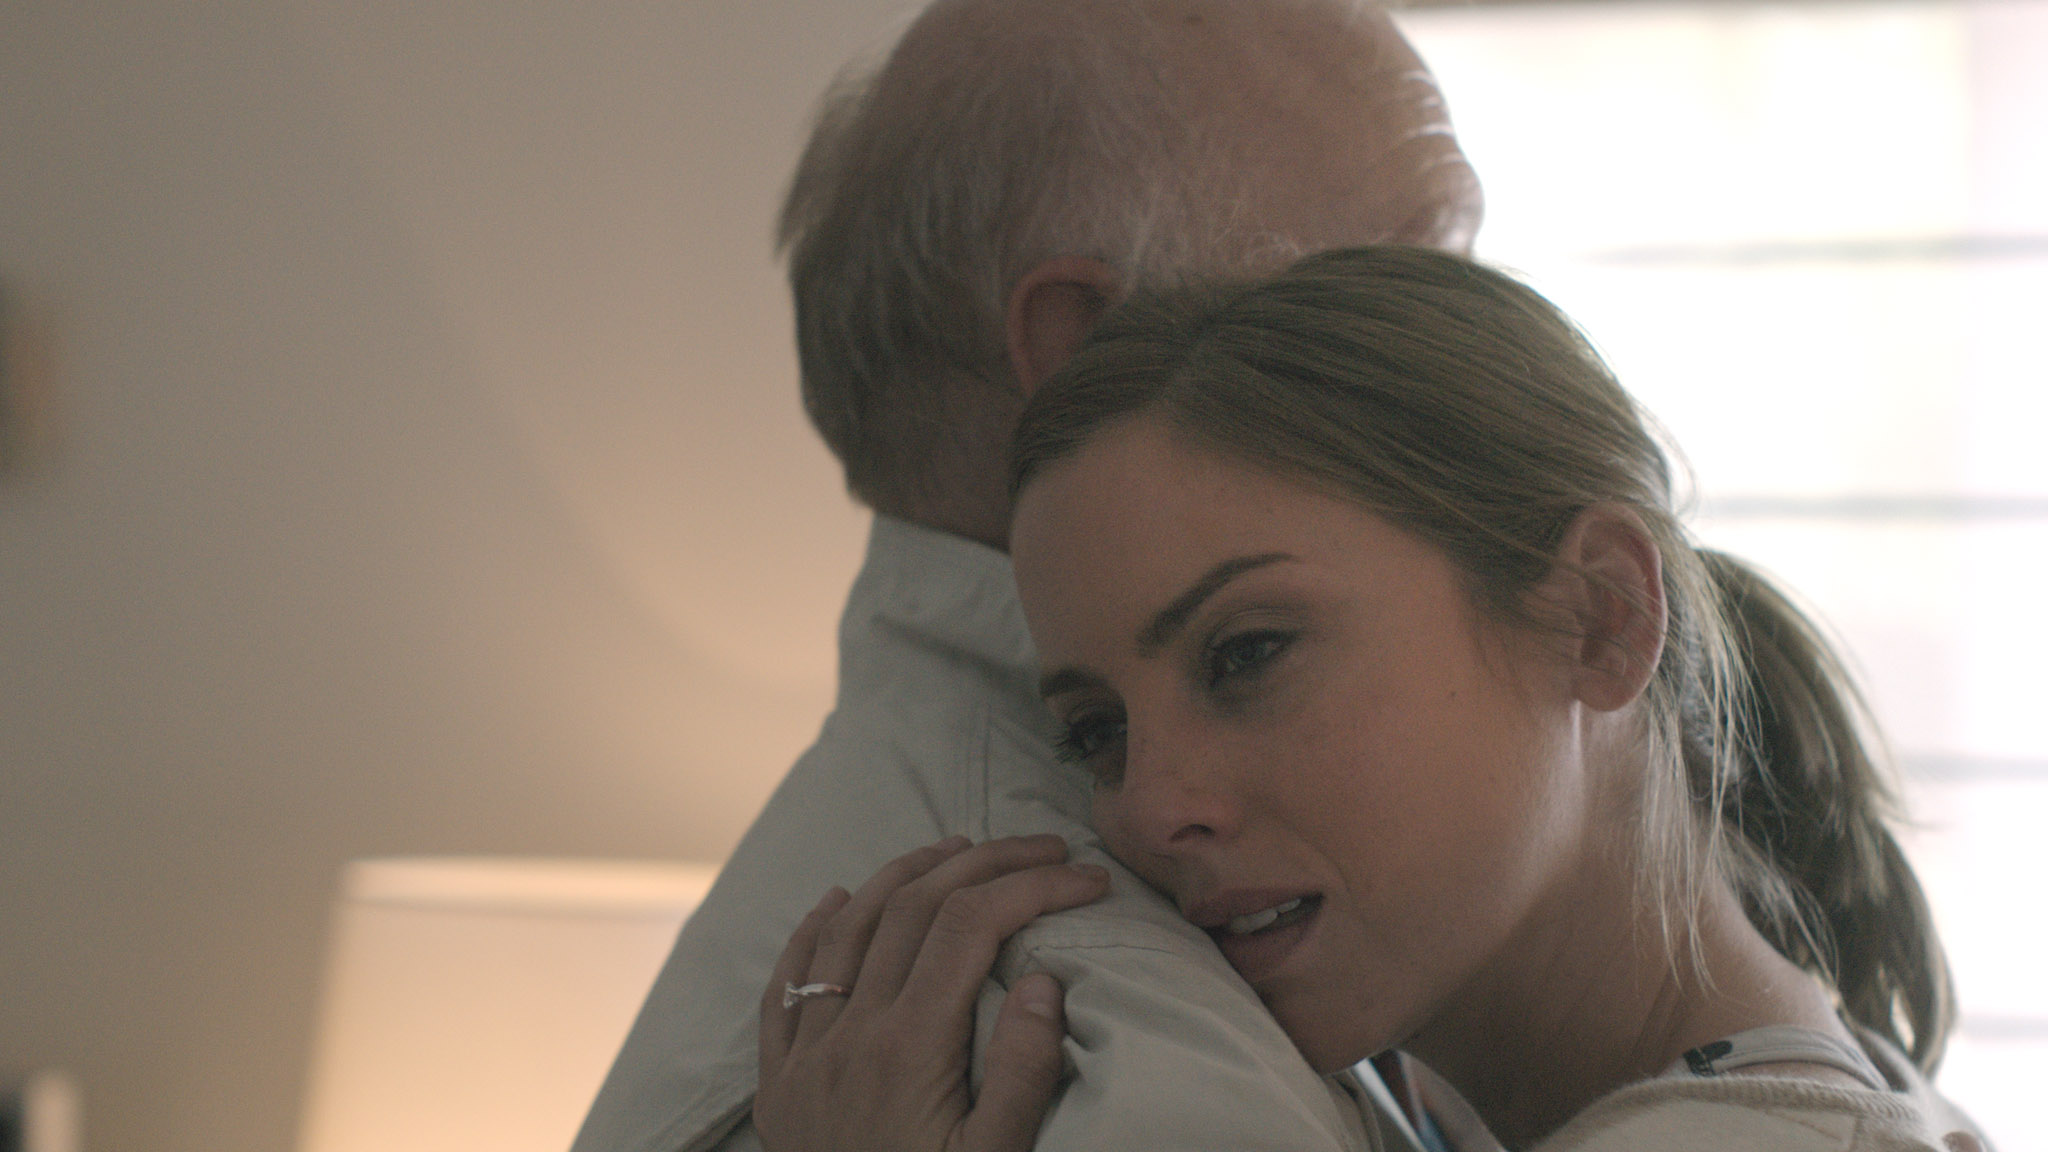 Alice & Joel embrace. Youth, a short film coming in 2016. Starring Jessica Stroup and George Maguire, directed by Brett Marty. A sci-fi film about growing old in a world of perpetual youth.